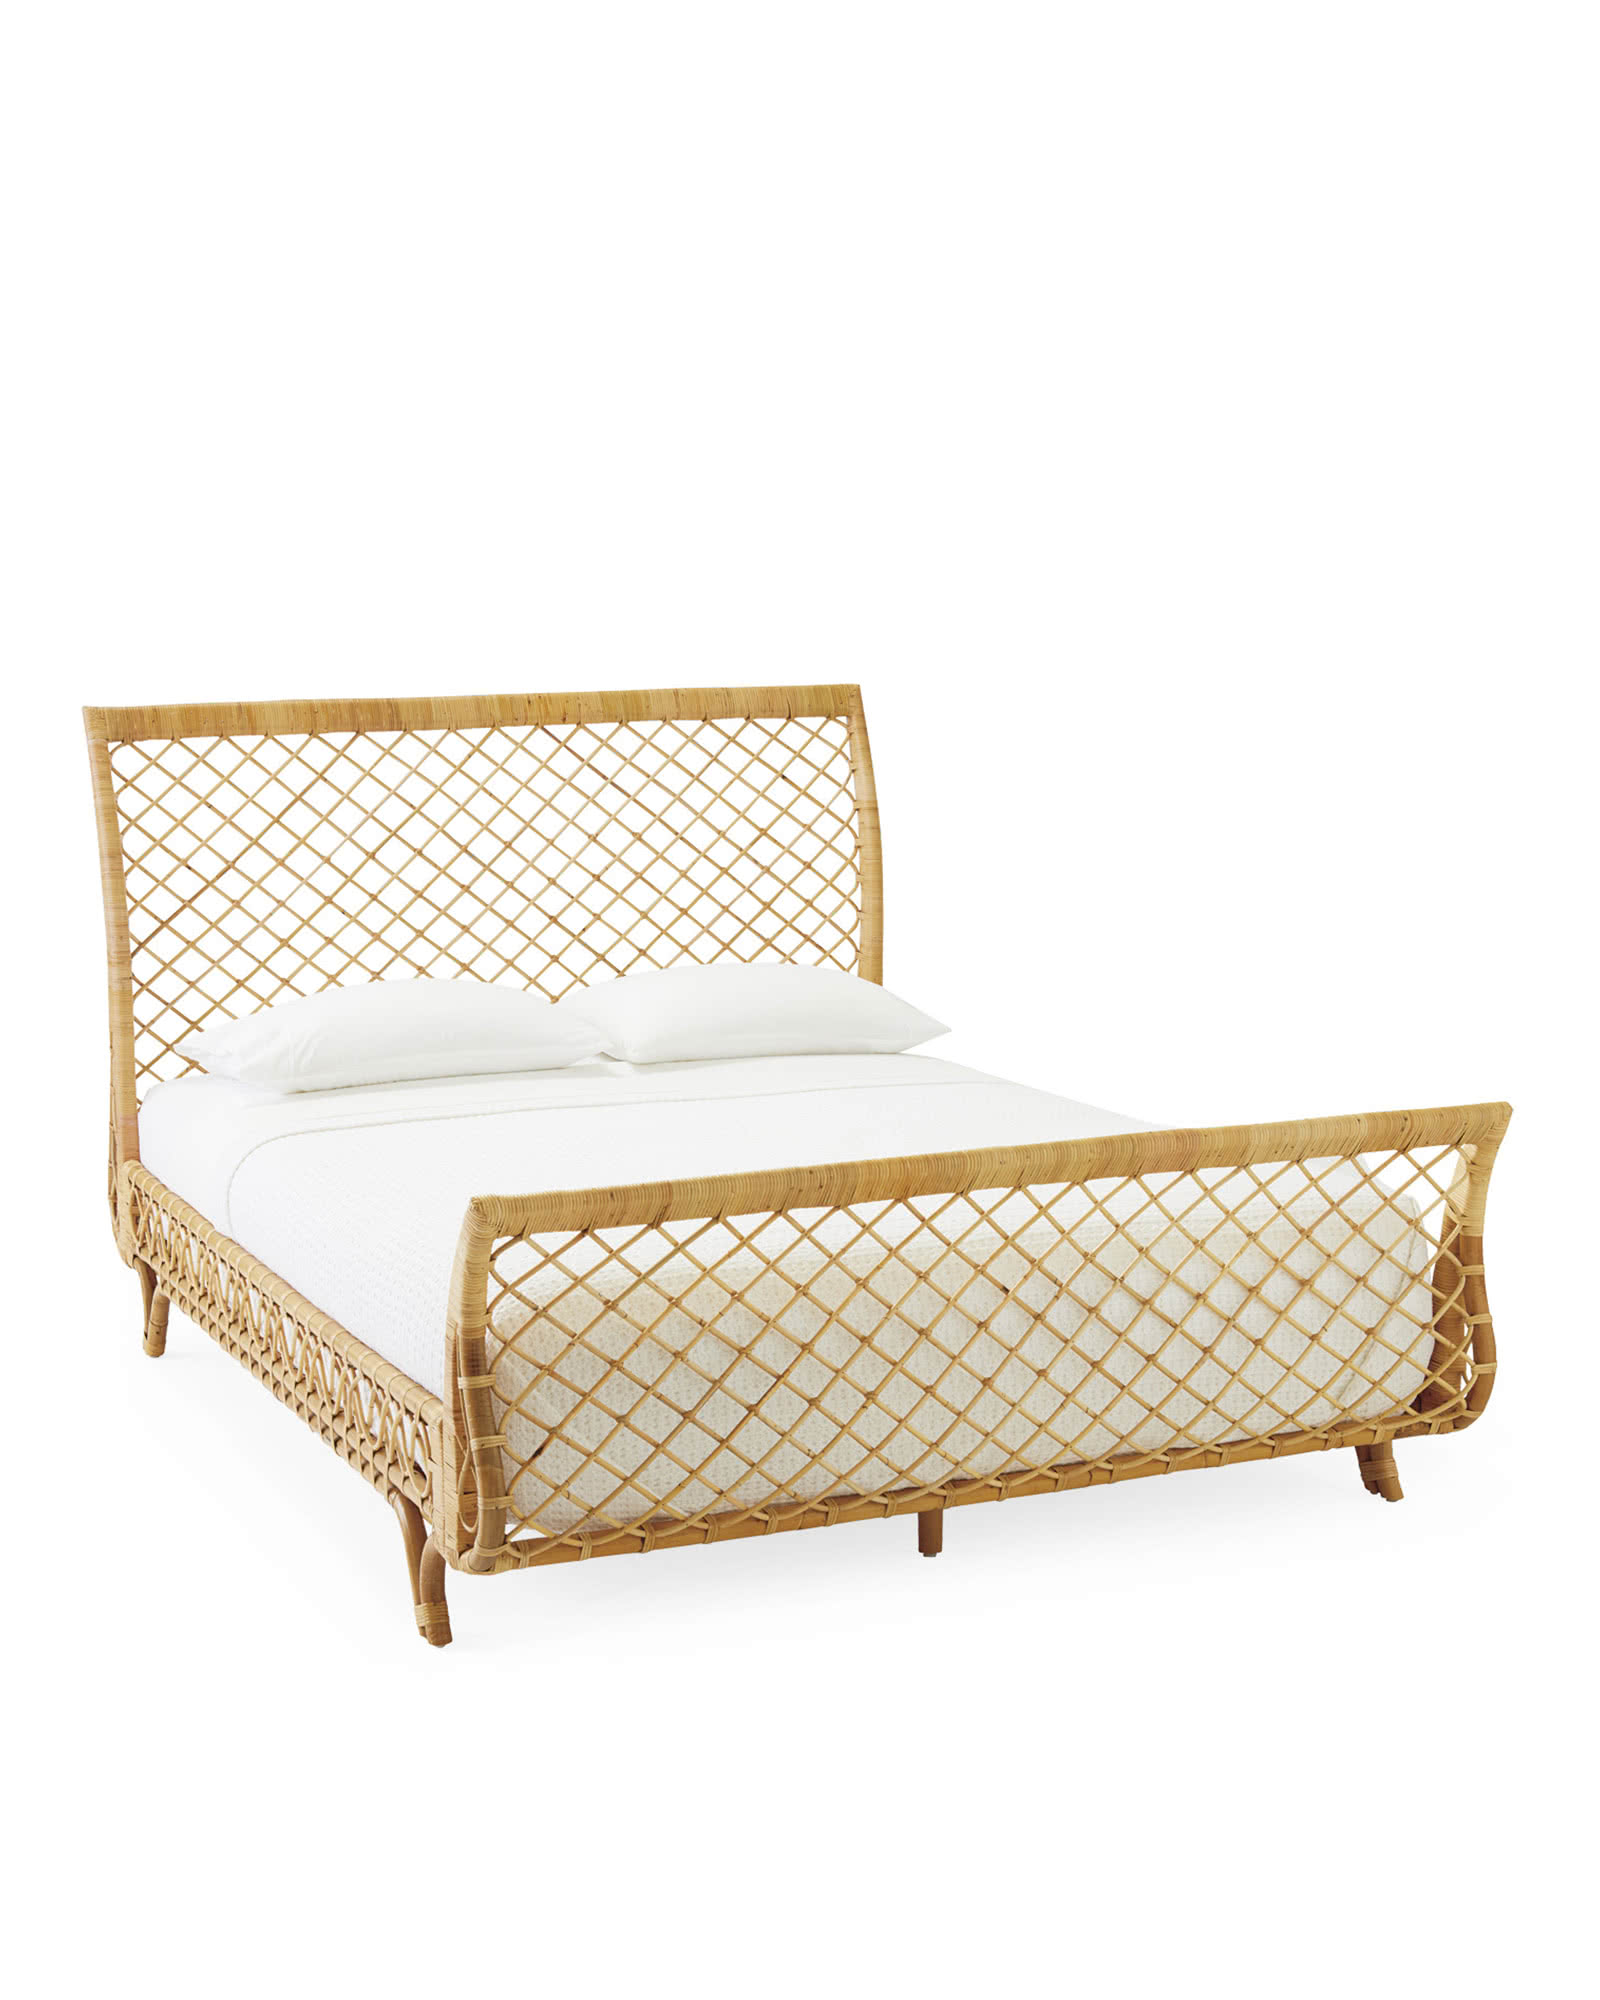 Avalon Bed,